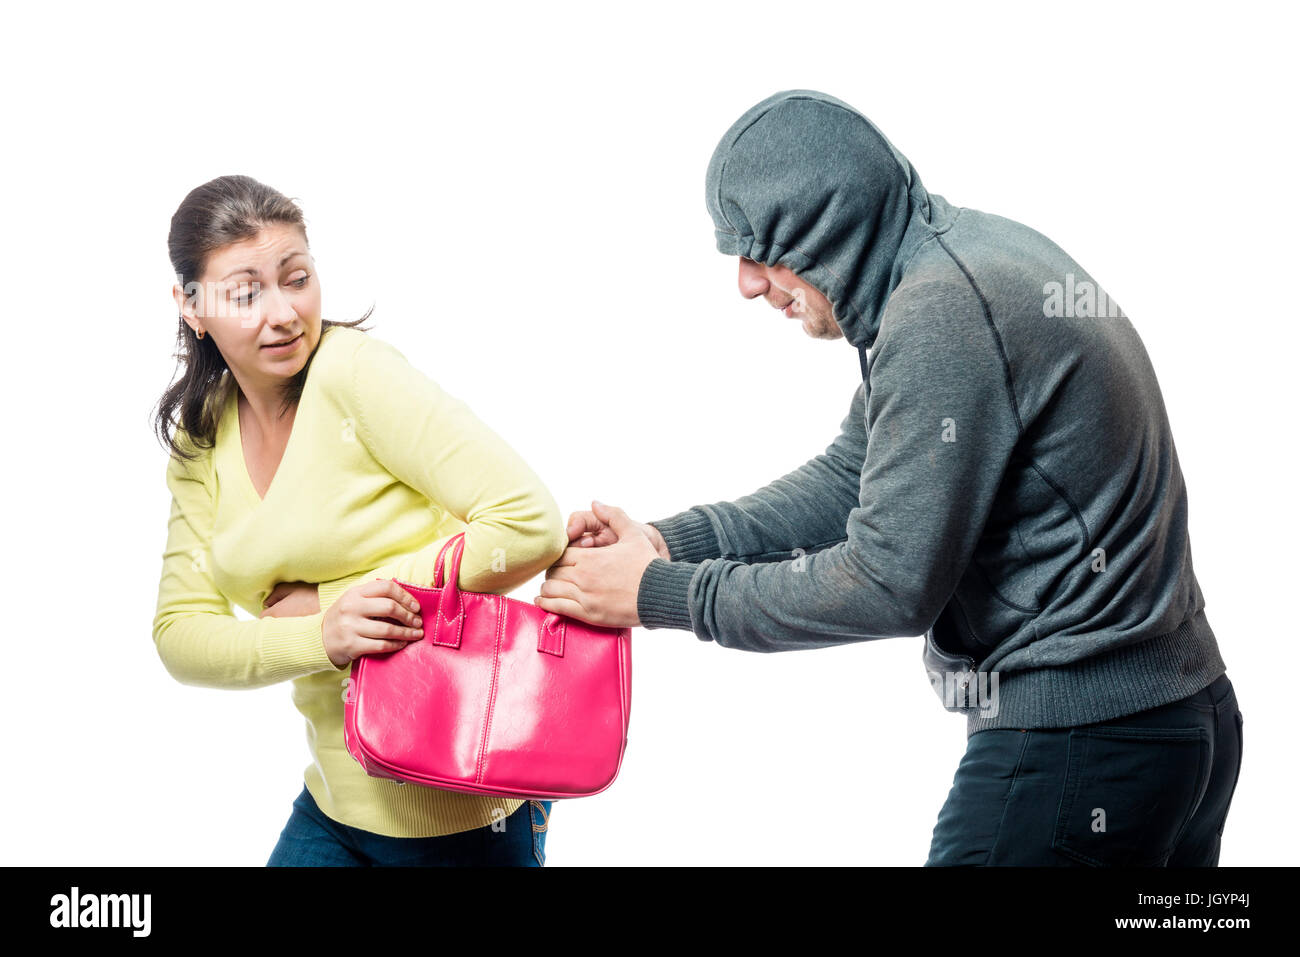 Girl with a pink bag became a victim of a robber, a portrait on a white background - Stock Image